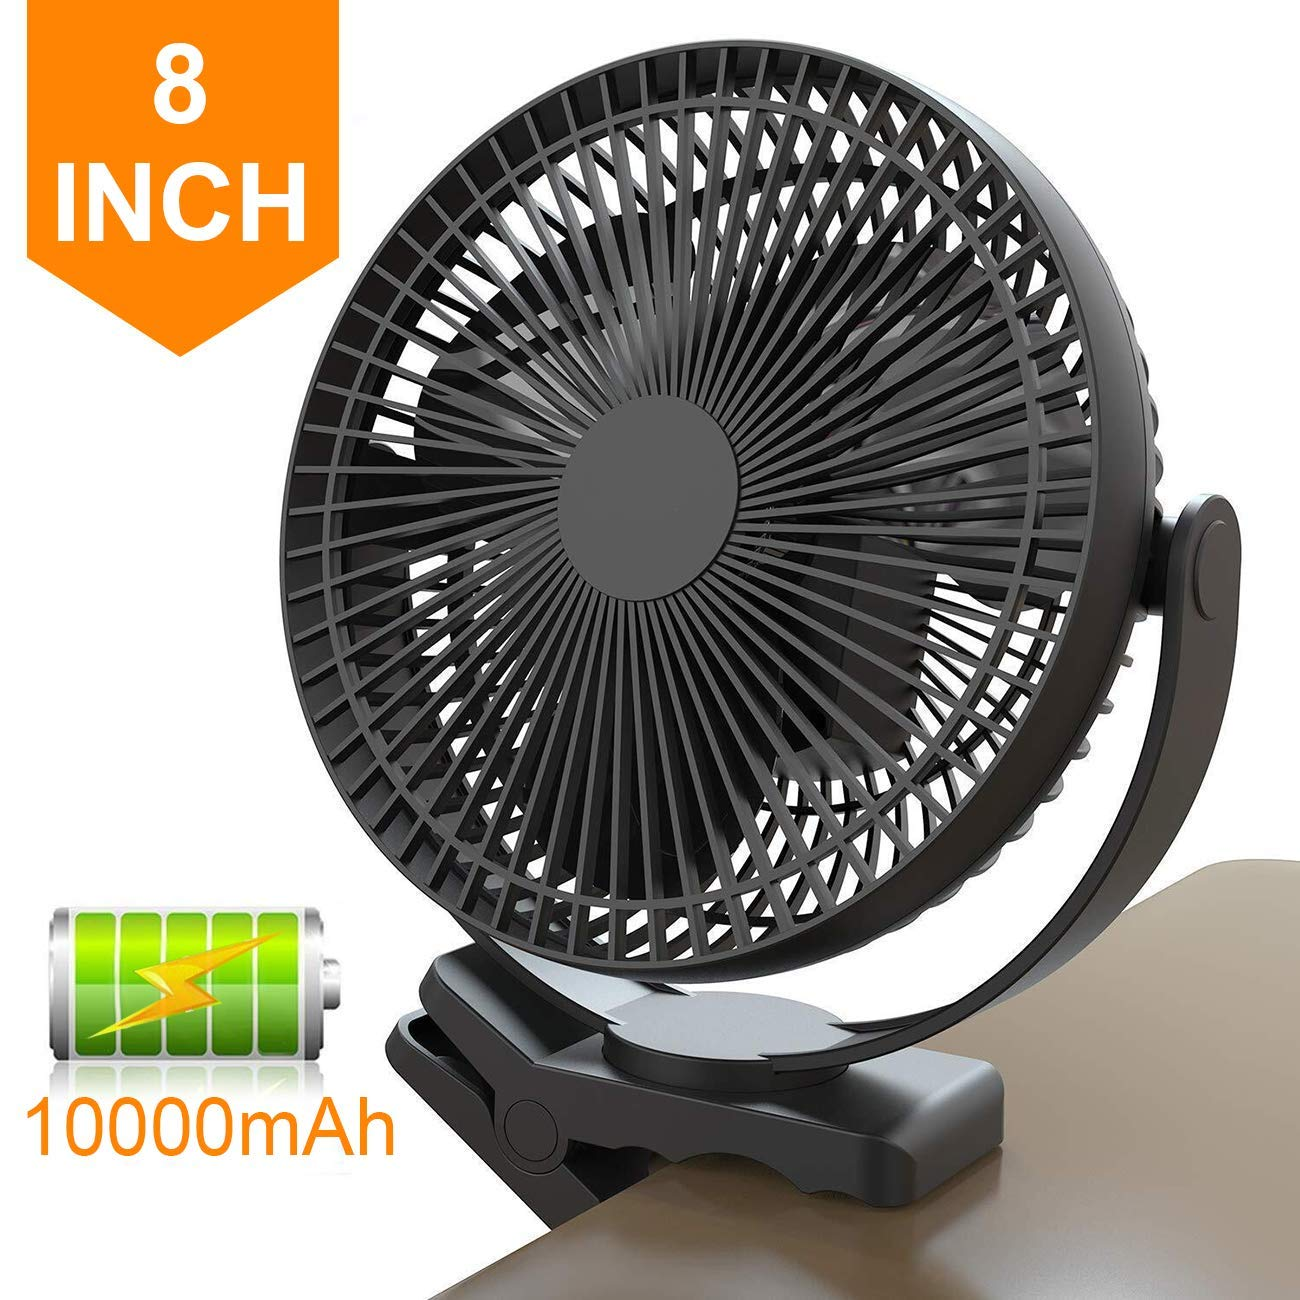 10000mAh 8 Inch Battery Operated Clip on Fan, Rechargeable Fan for Baby, 4 Speeds & 10W Fast Charging, Portable Cooling USB Fan for Baby Stroller Golf Cart Car Gym Treadmill,2 in 1 Desk&Clip Fan-Black by Gazeled (Image #1)